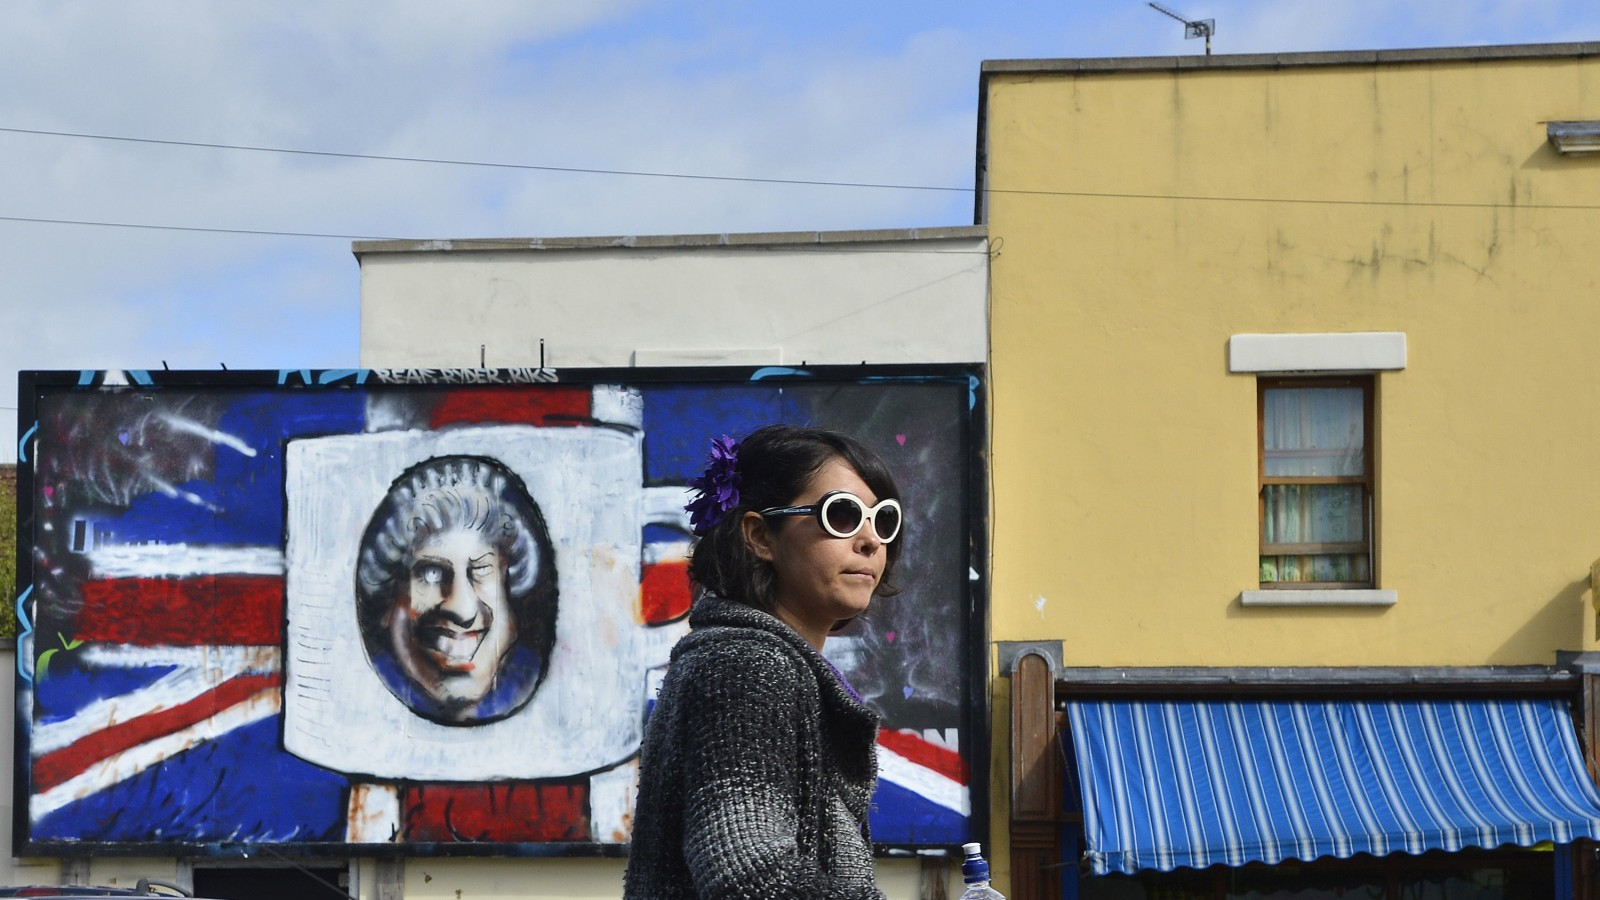 A pedestrian passes street art depicting Britain's Queen Elizabeth on a disused advertising hoarding in the St. Paul's area of Bristol, south west England May 16, 2012.   REUTERS/Toby Melville (BRITAIN - Tags: CITYSPACE SOCIETY ROYALS) - RTR3250E